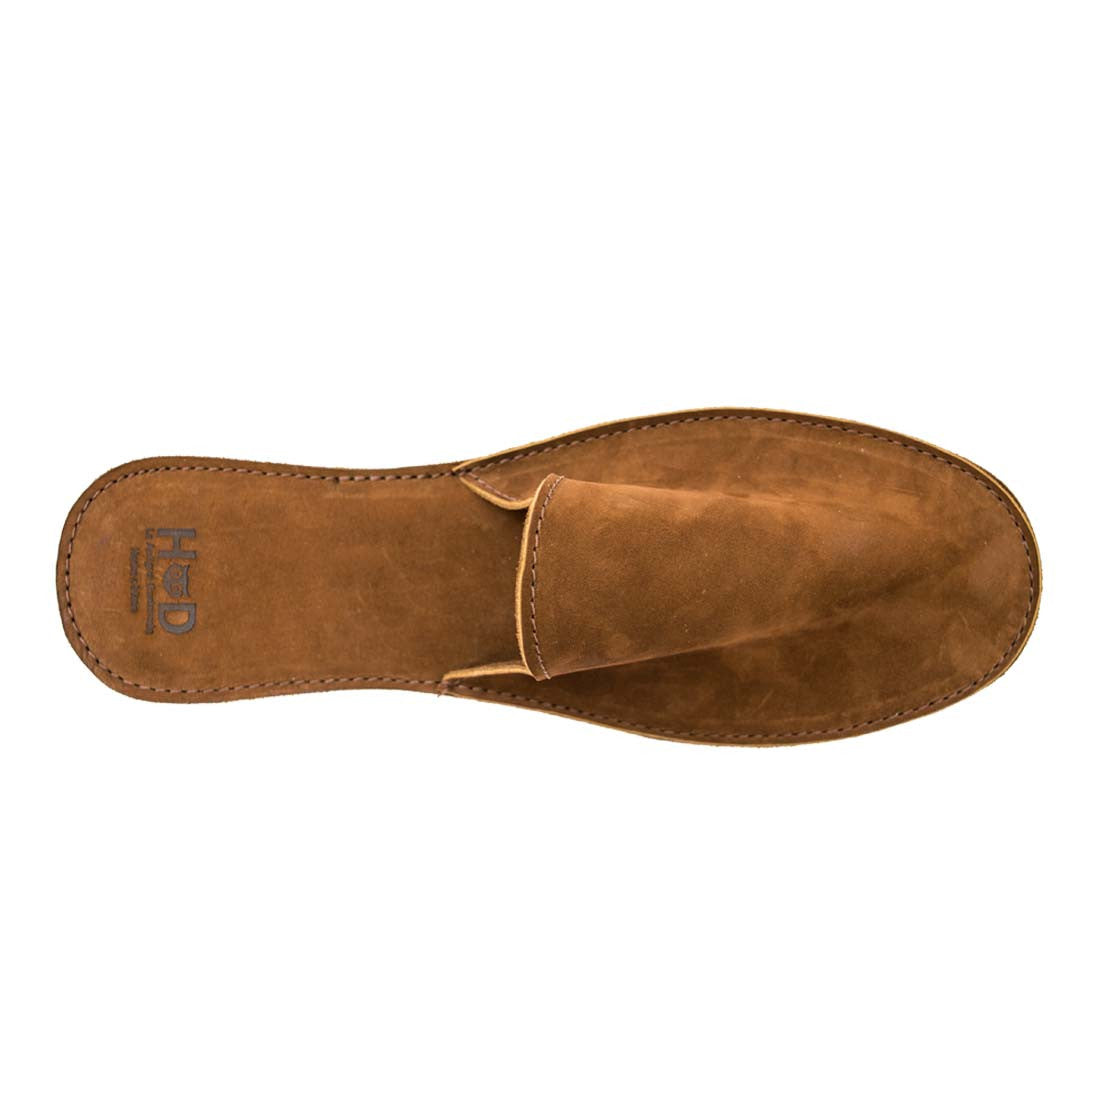 Leather House Slippers. Leather House Slippers   Hide   Drink